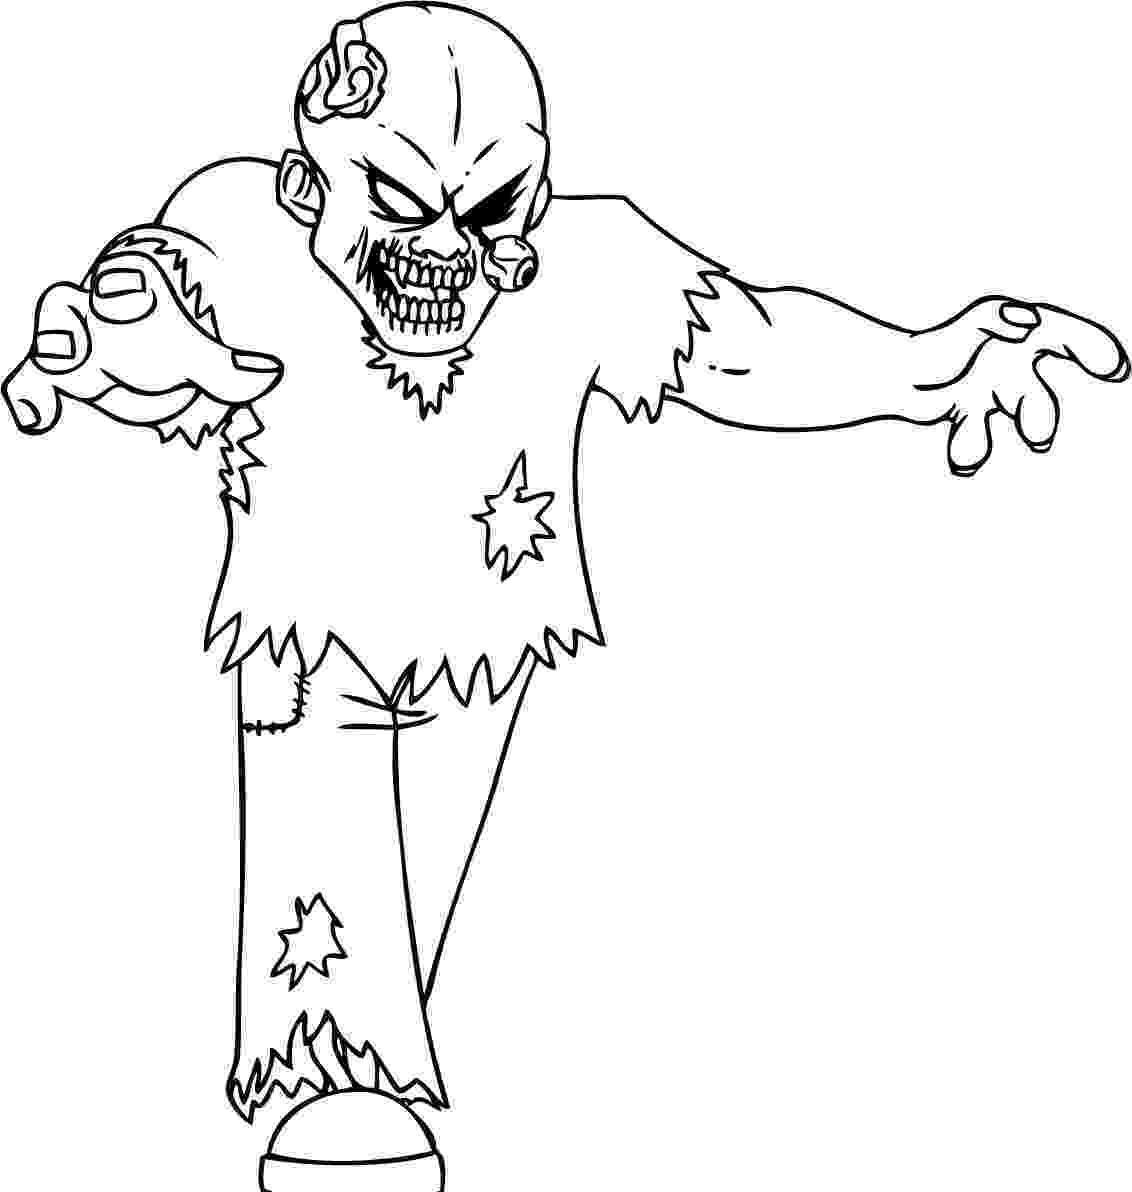 zombie coloring pages online zombie 61 characters printable coloring pages coloring pages zombie online